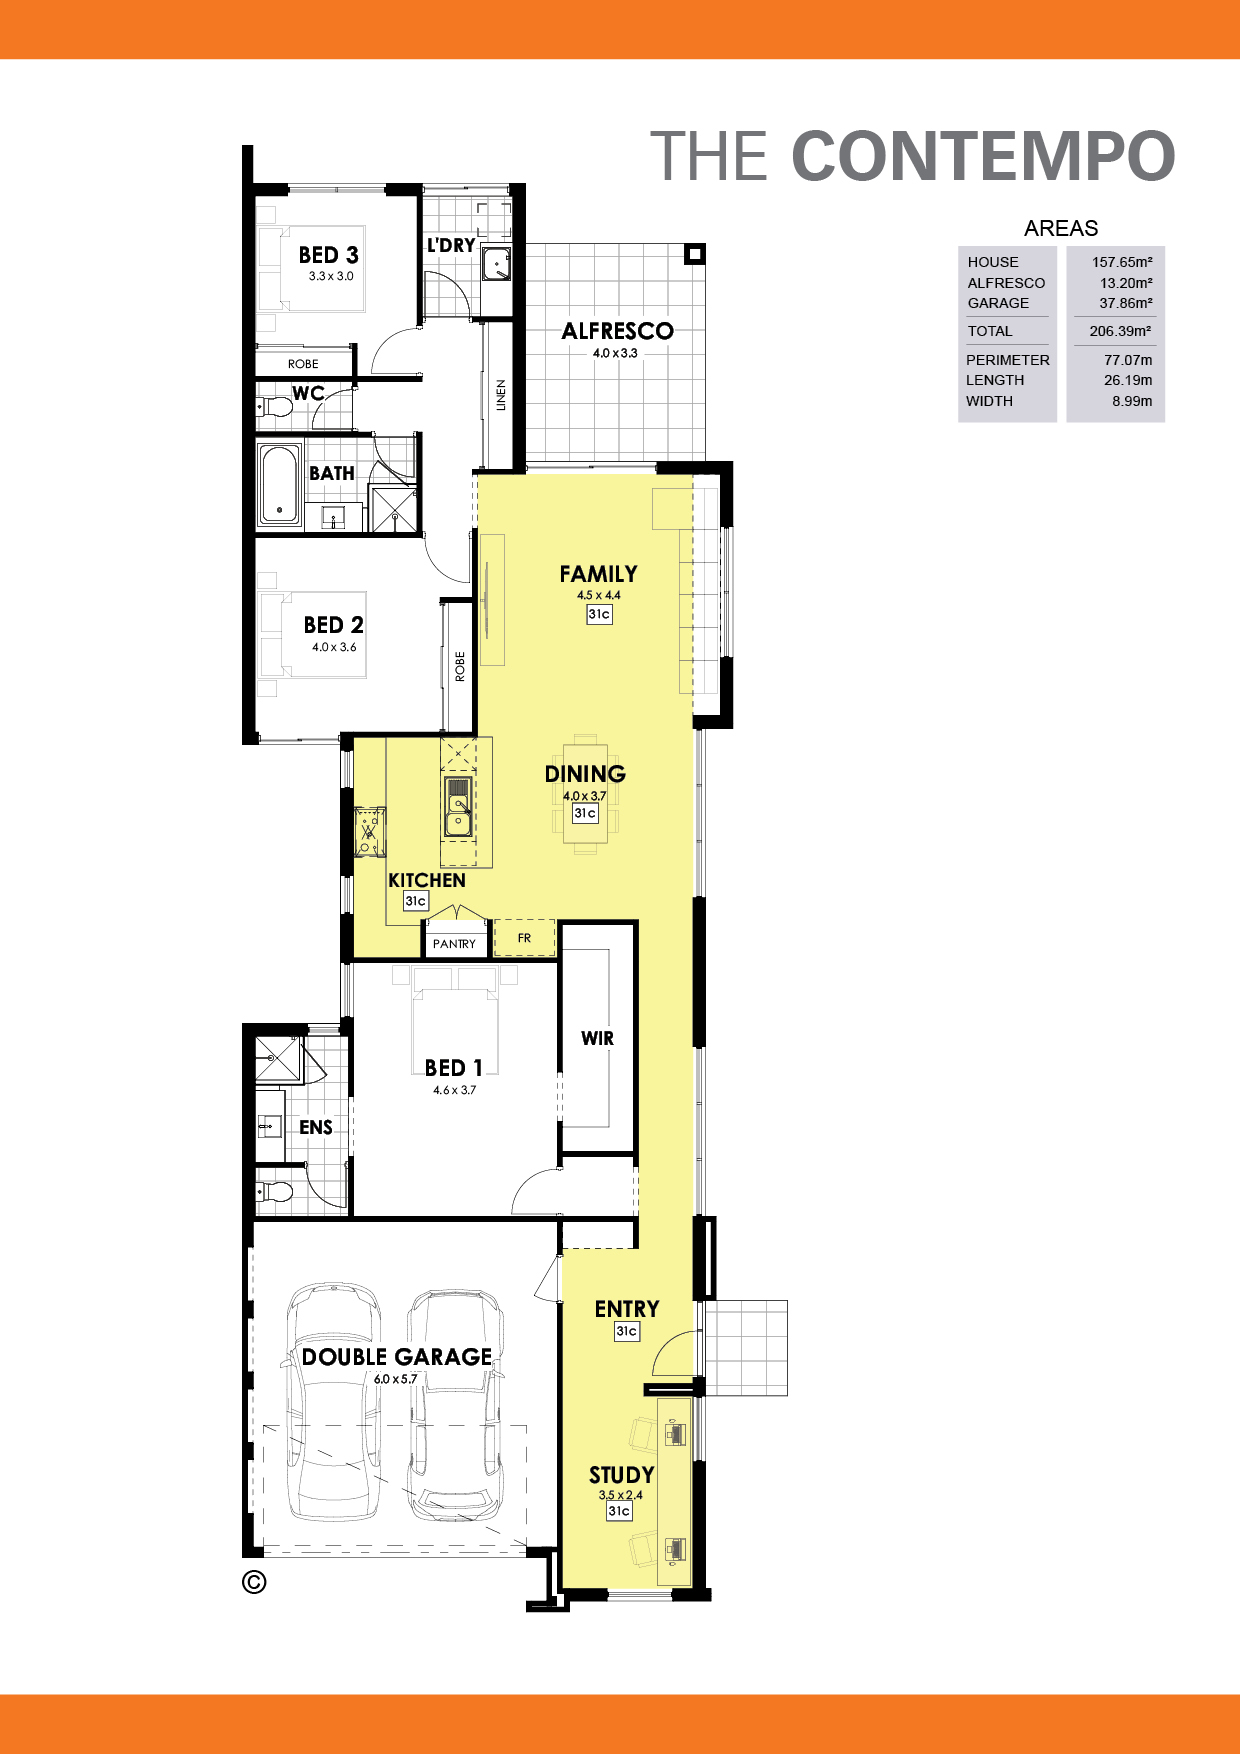 The Contempo Floorplan